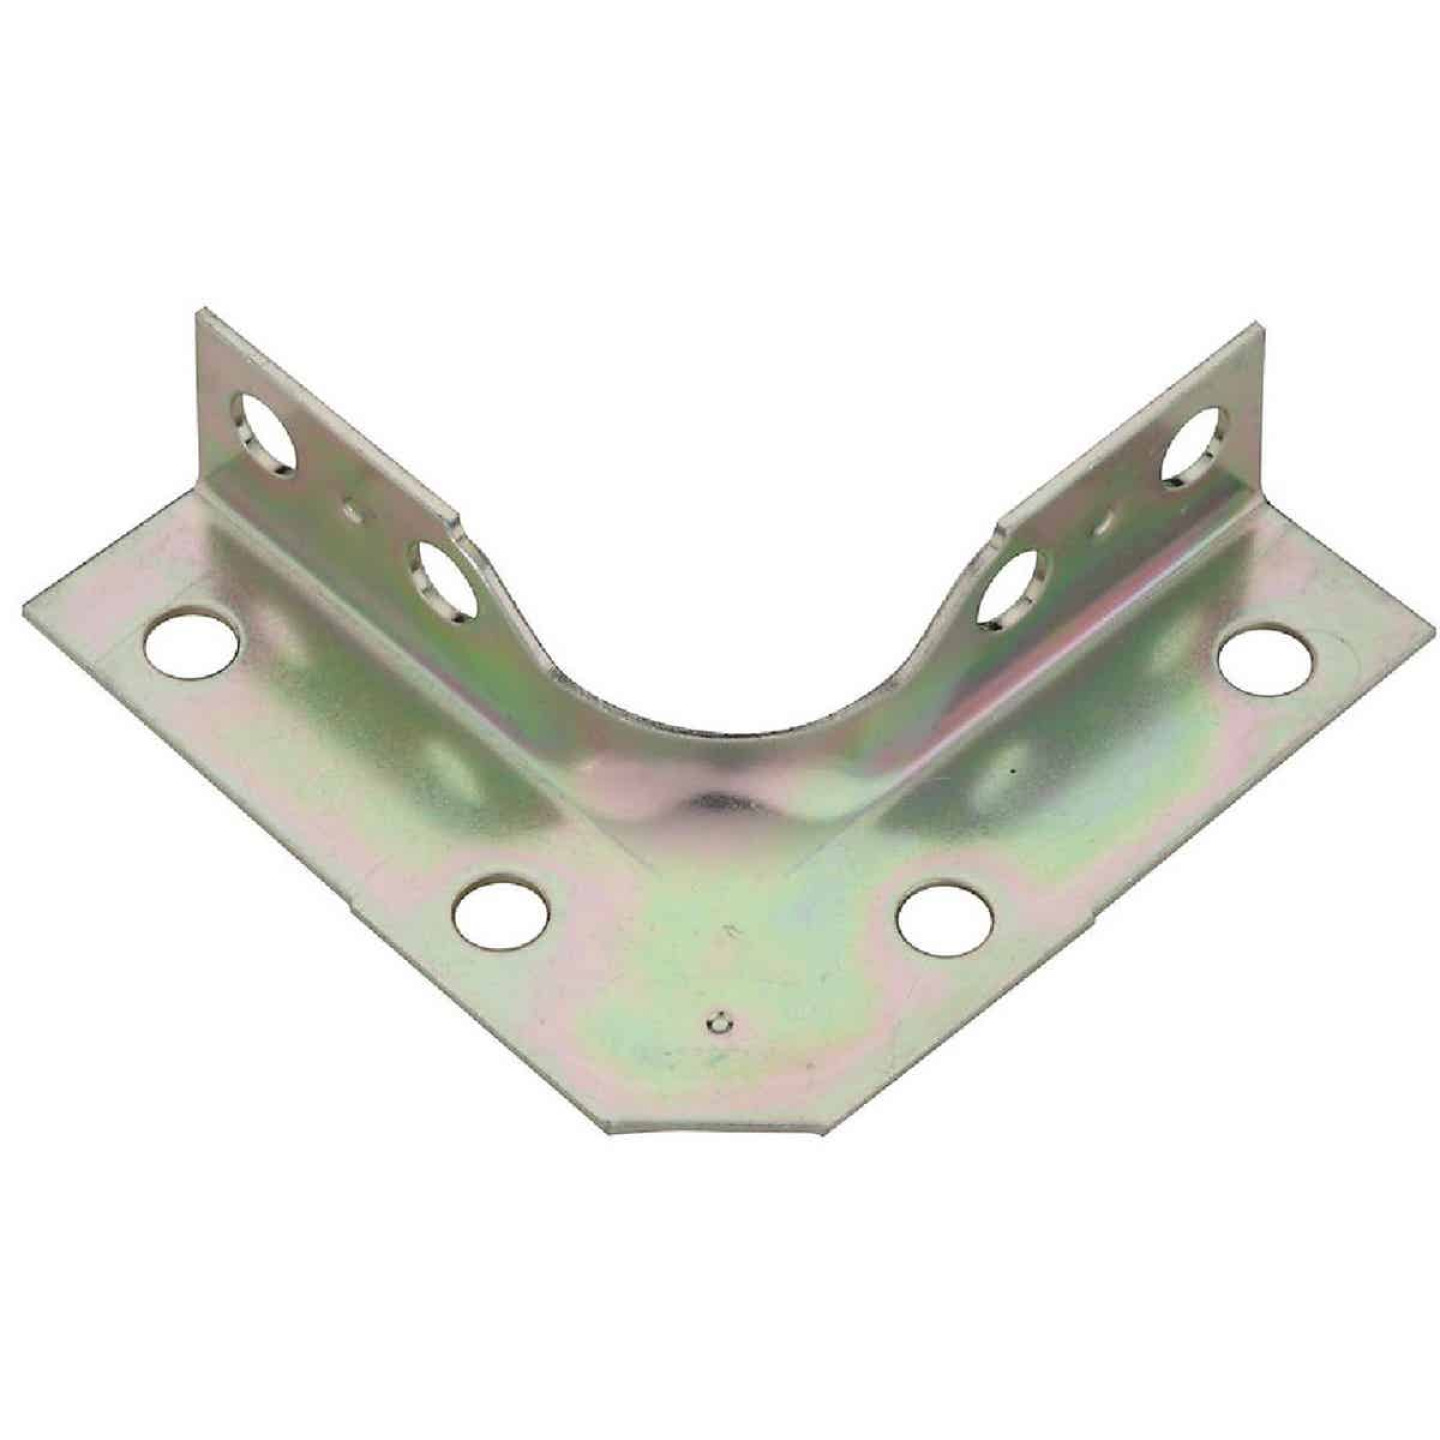 National Catalog V114 Series 2-1/2 In. x 5/8 In. Zinc Corner Brace (4-Count) Image 1